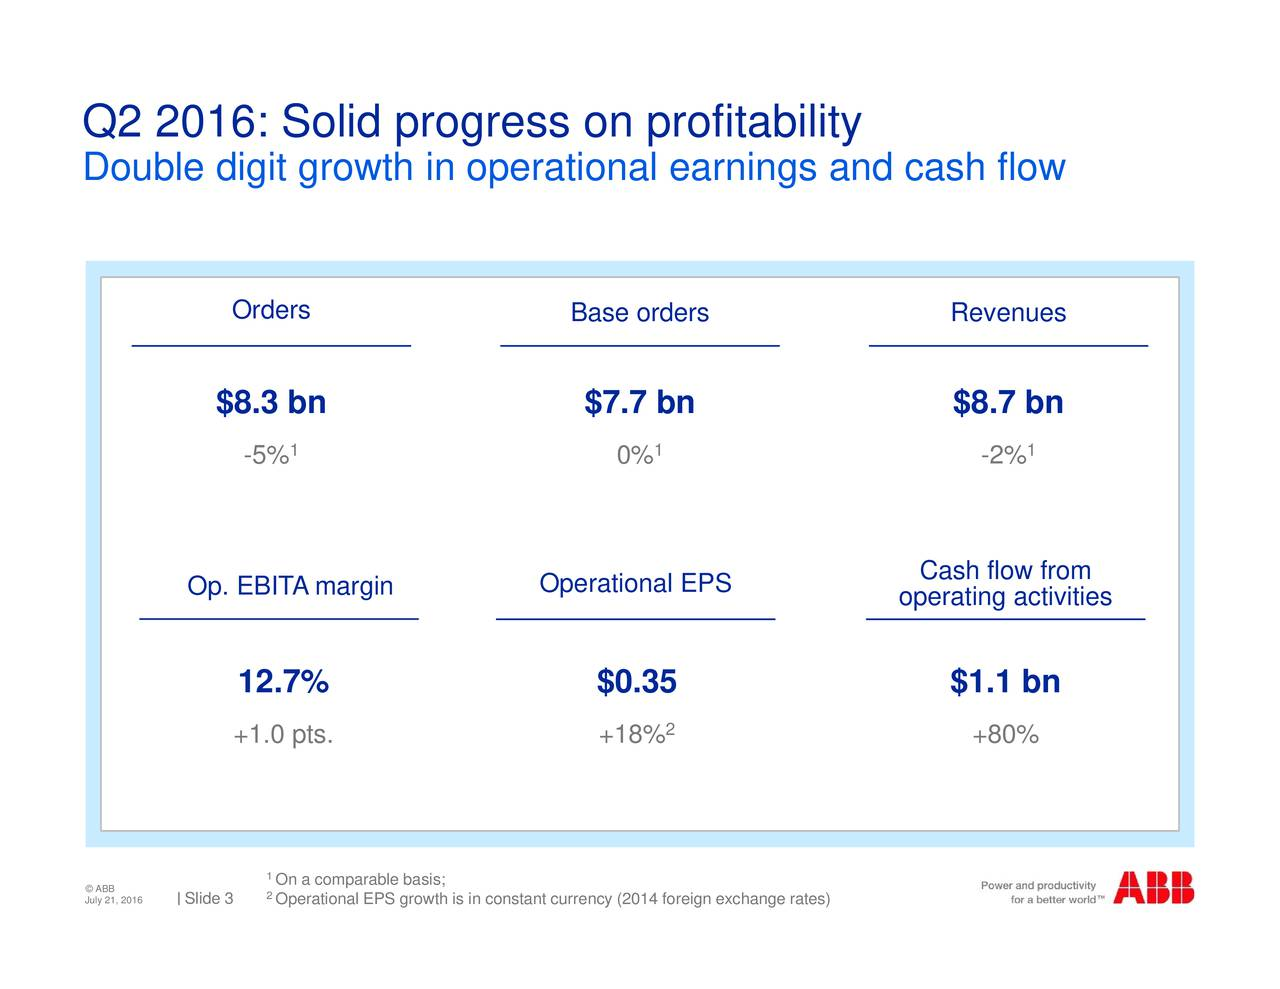 -2% +80% Revenues.7 bn $1.1 bn Cash flow from operating activities 2 0% $7.7 bn $0.358% Base orders currency (2014 foreign exchange rates) Operational EPS 2artnalPSso;wth is in constant Orders$8.3 bn 12.+1.0 pts. Op. EBITA margin Slide 3 July 21, 2016 Q2 Do2u01l6:dSgotgirow thgiro peroationroleatrbilgts and cash flow